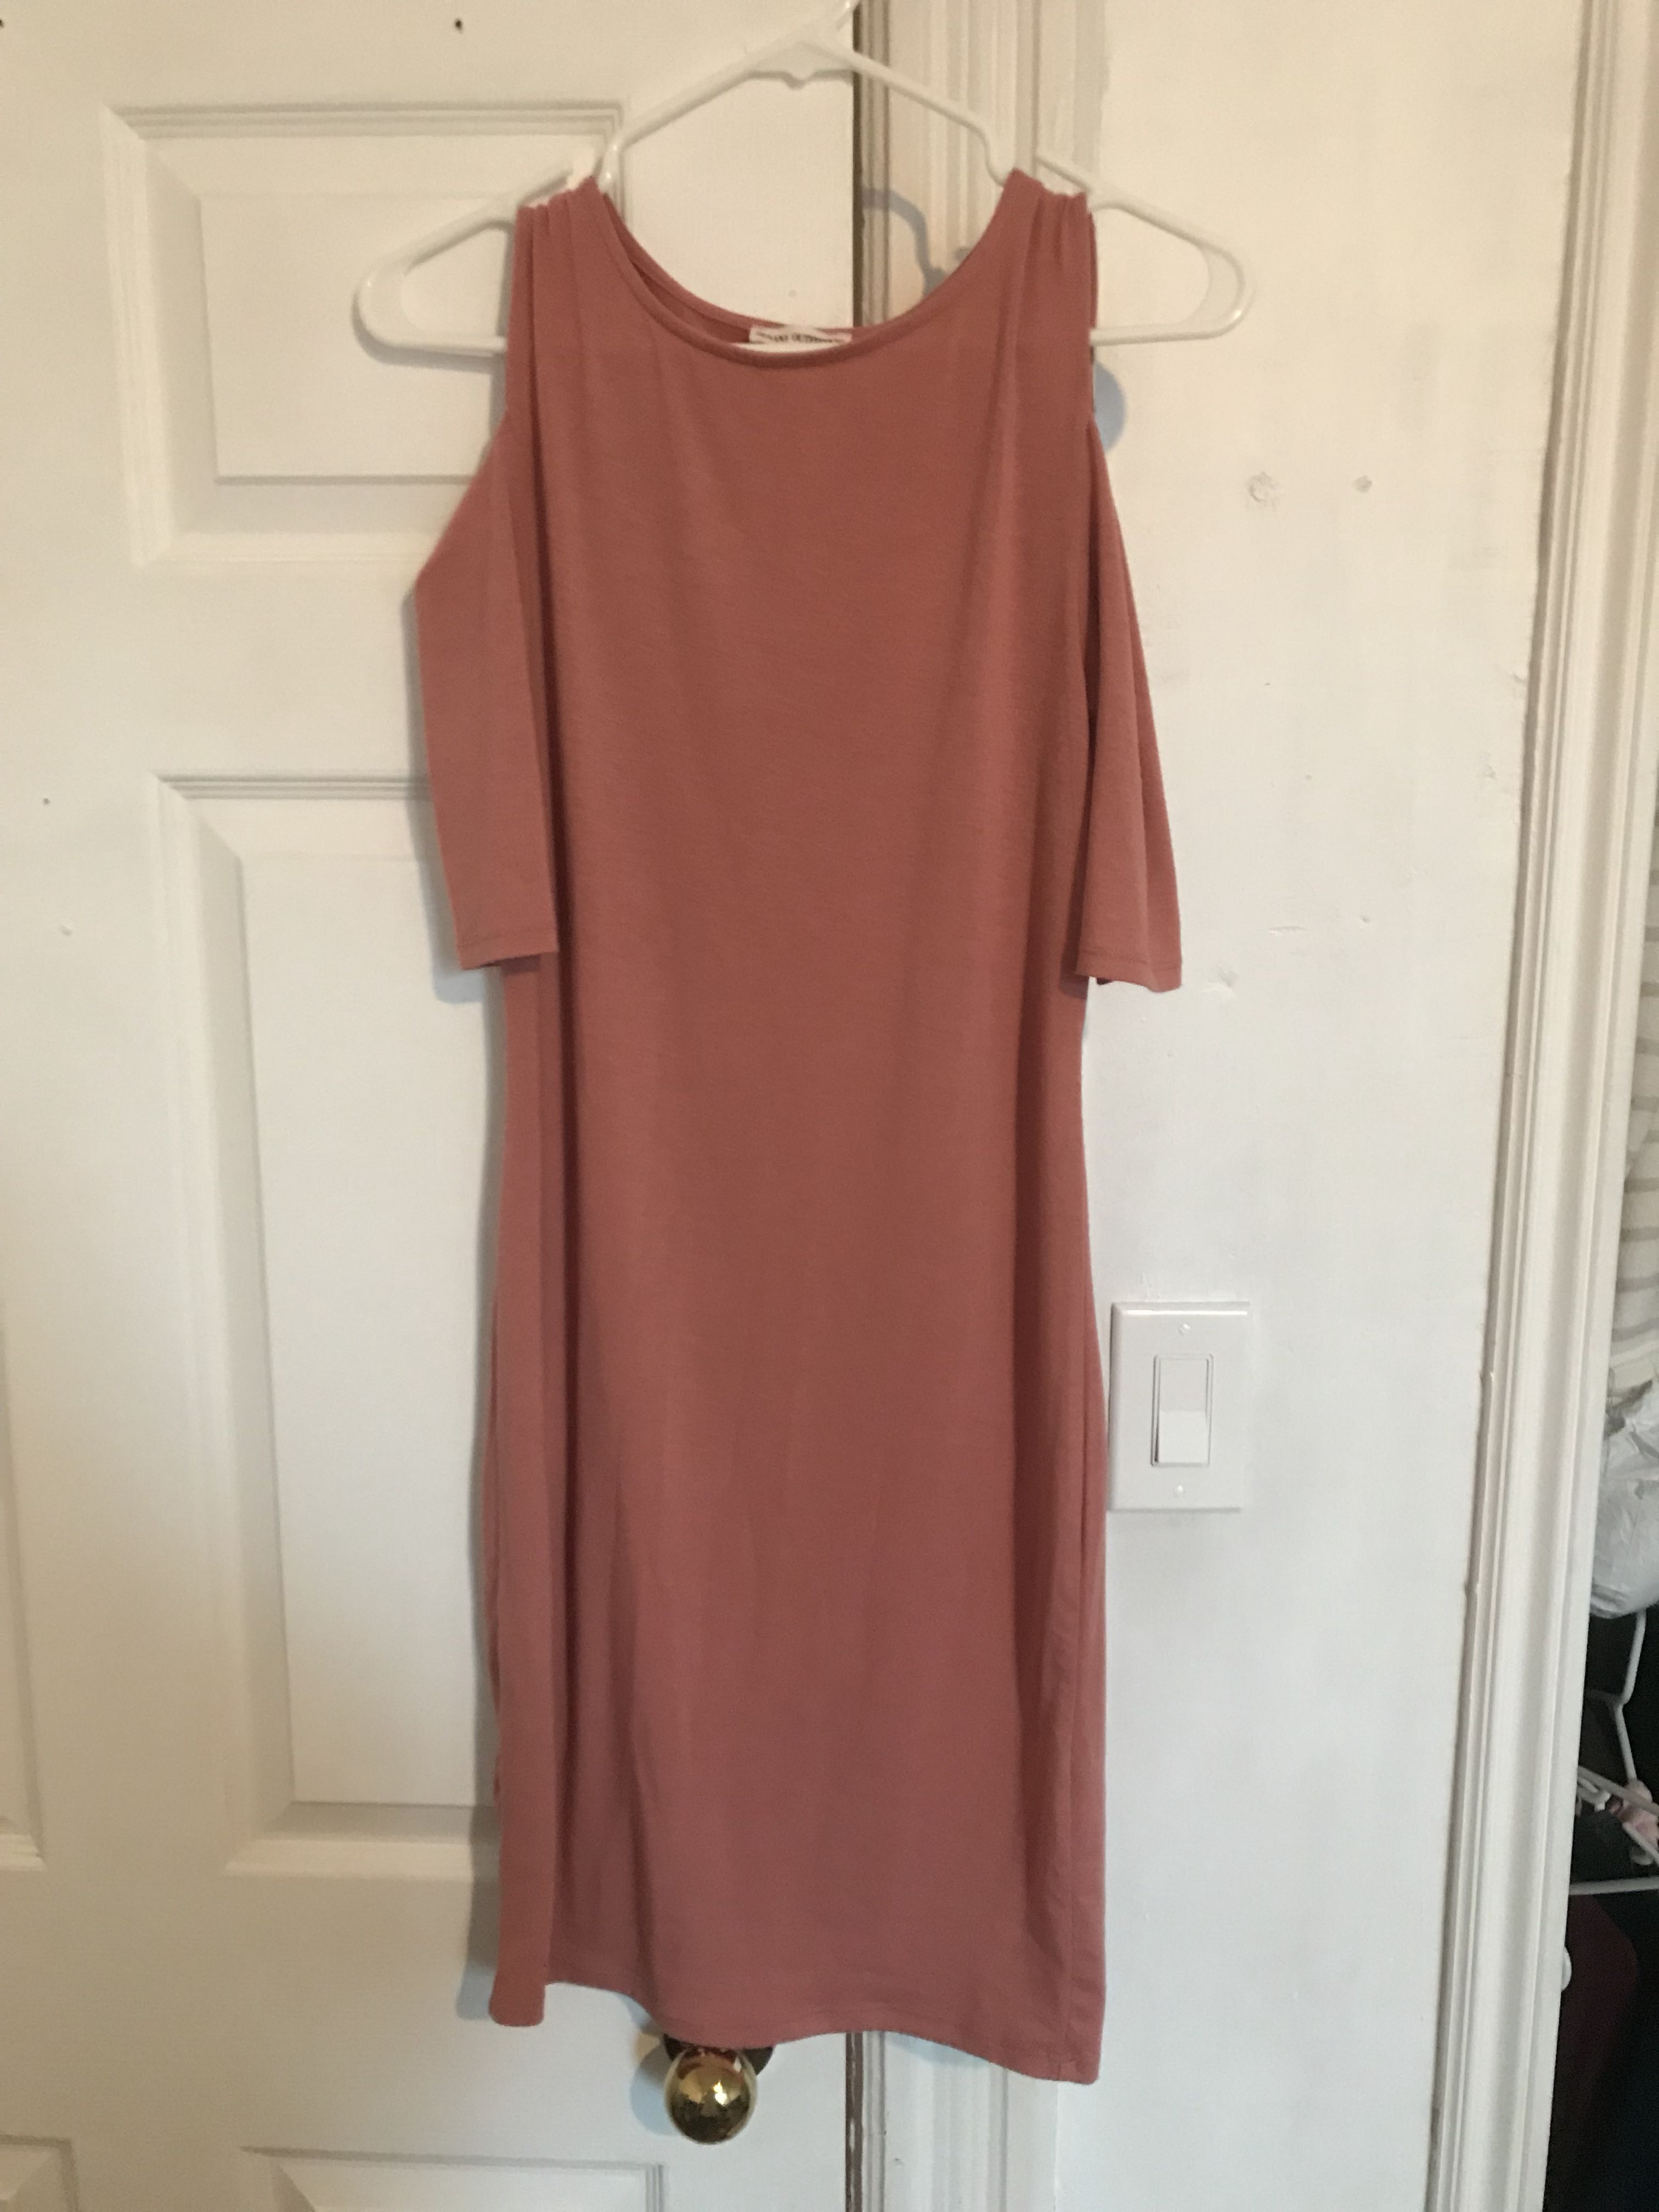 Bodycon dress with shoulder cutouts